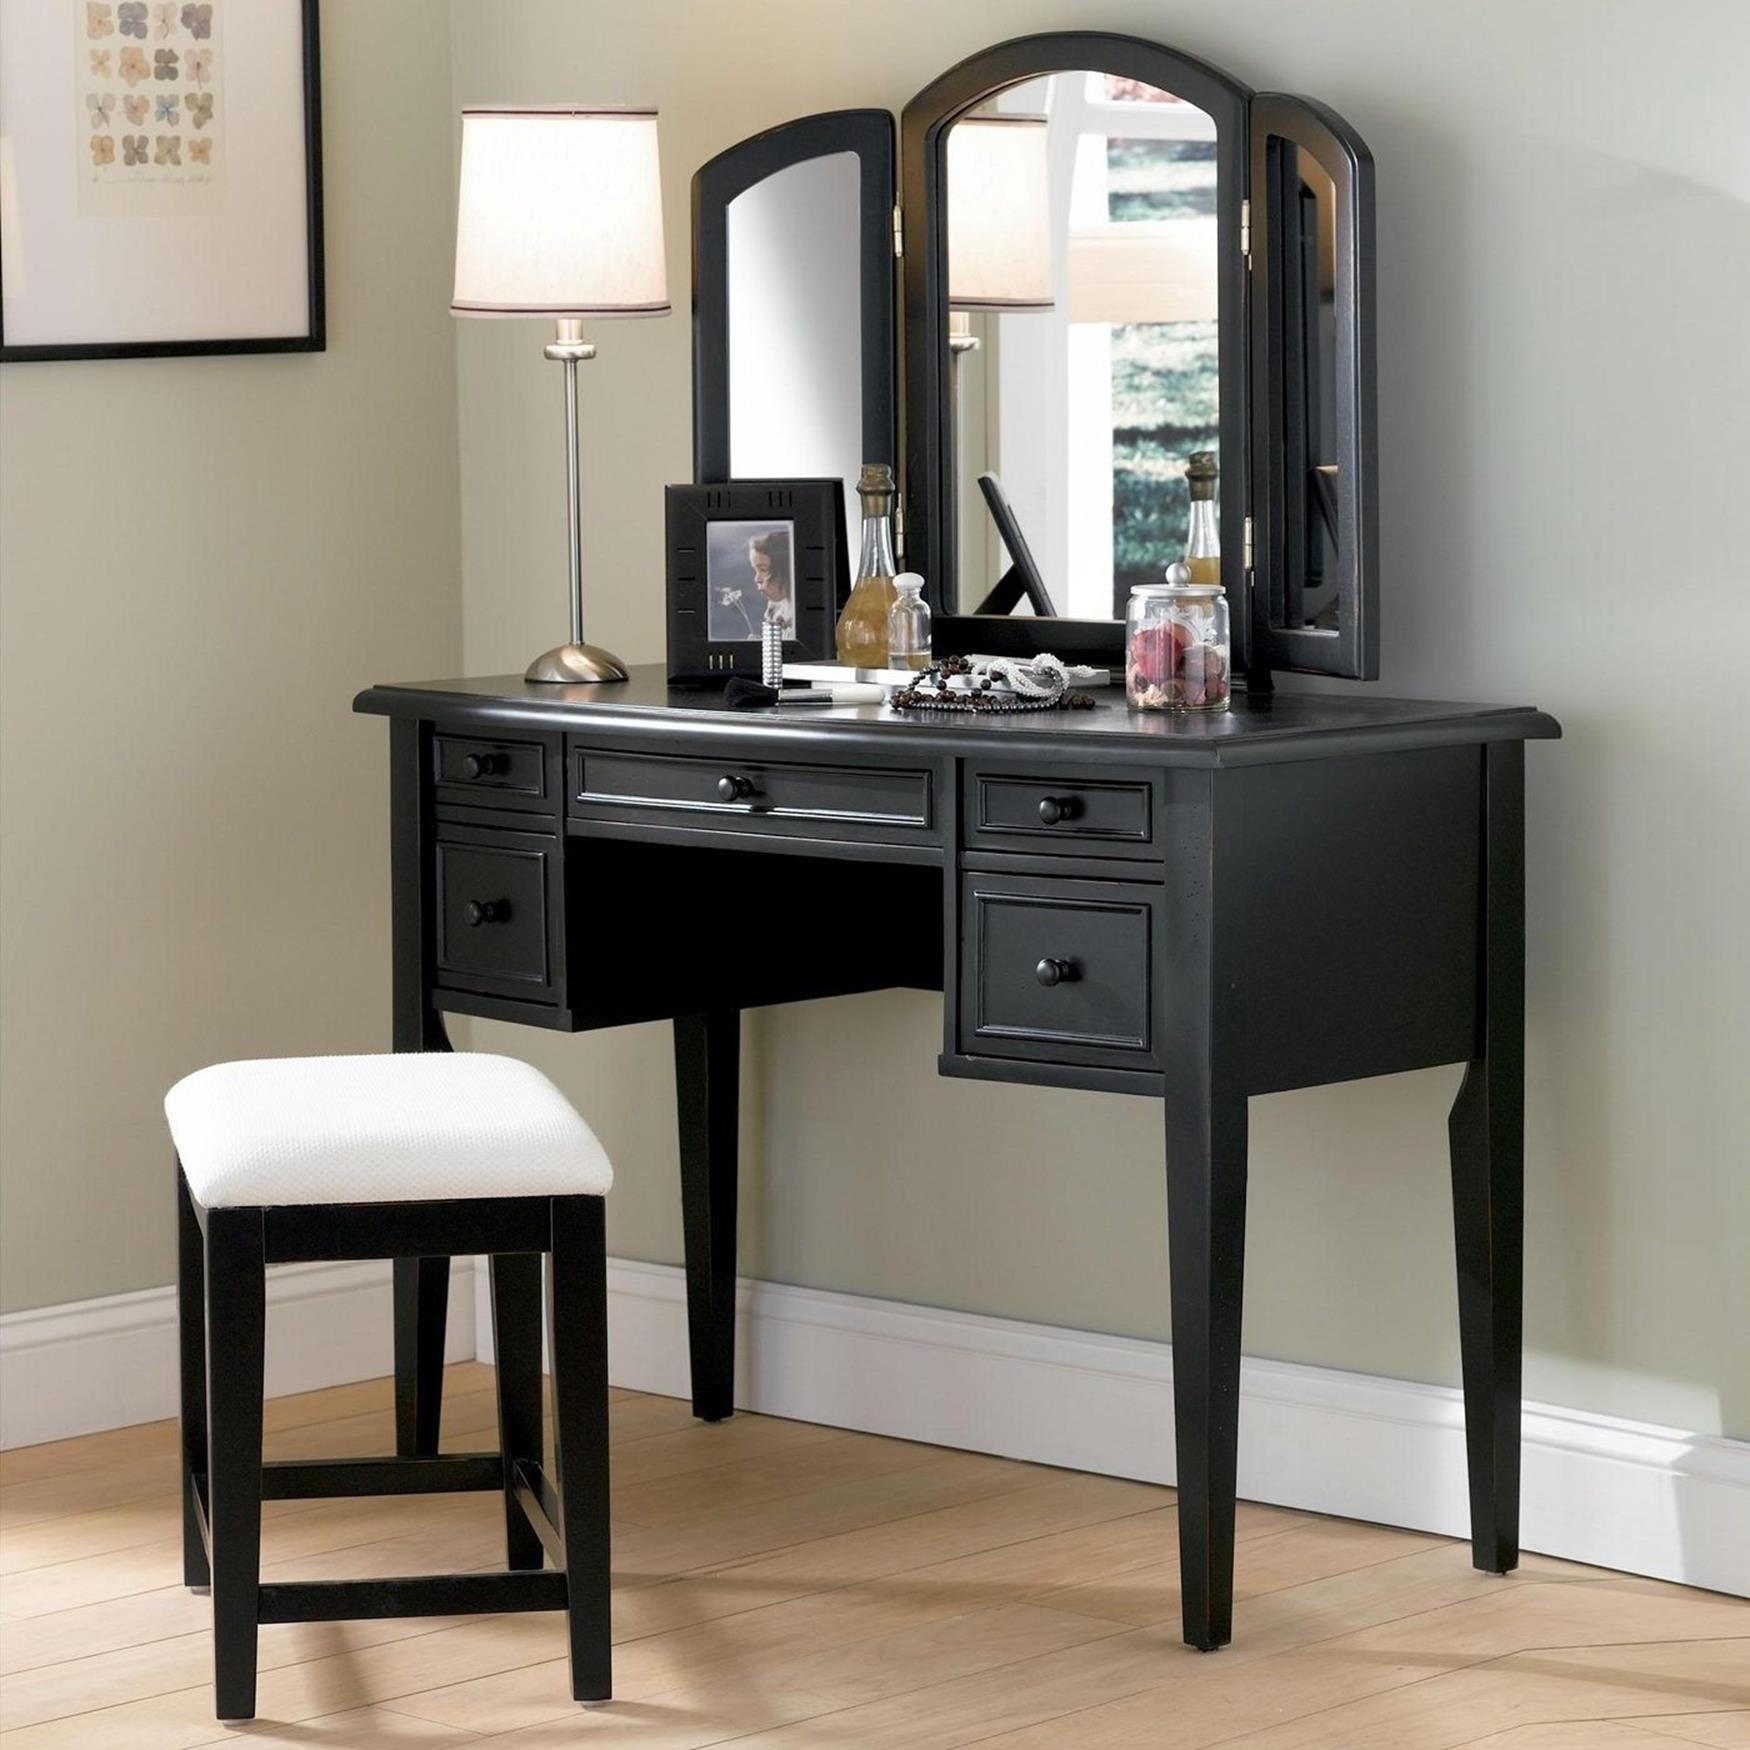 Bedroom Vanity Set With Lights Around Mirror 5